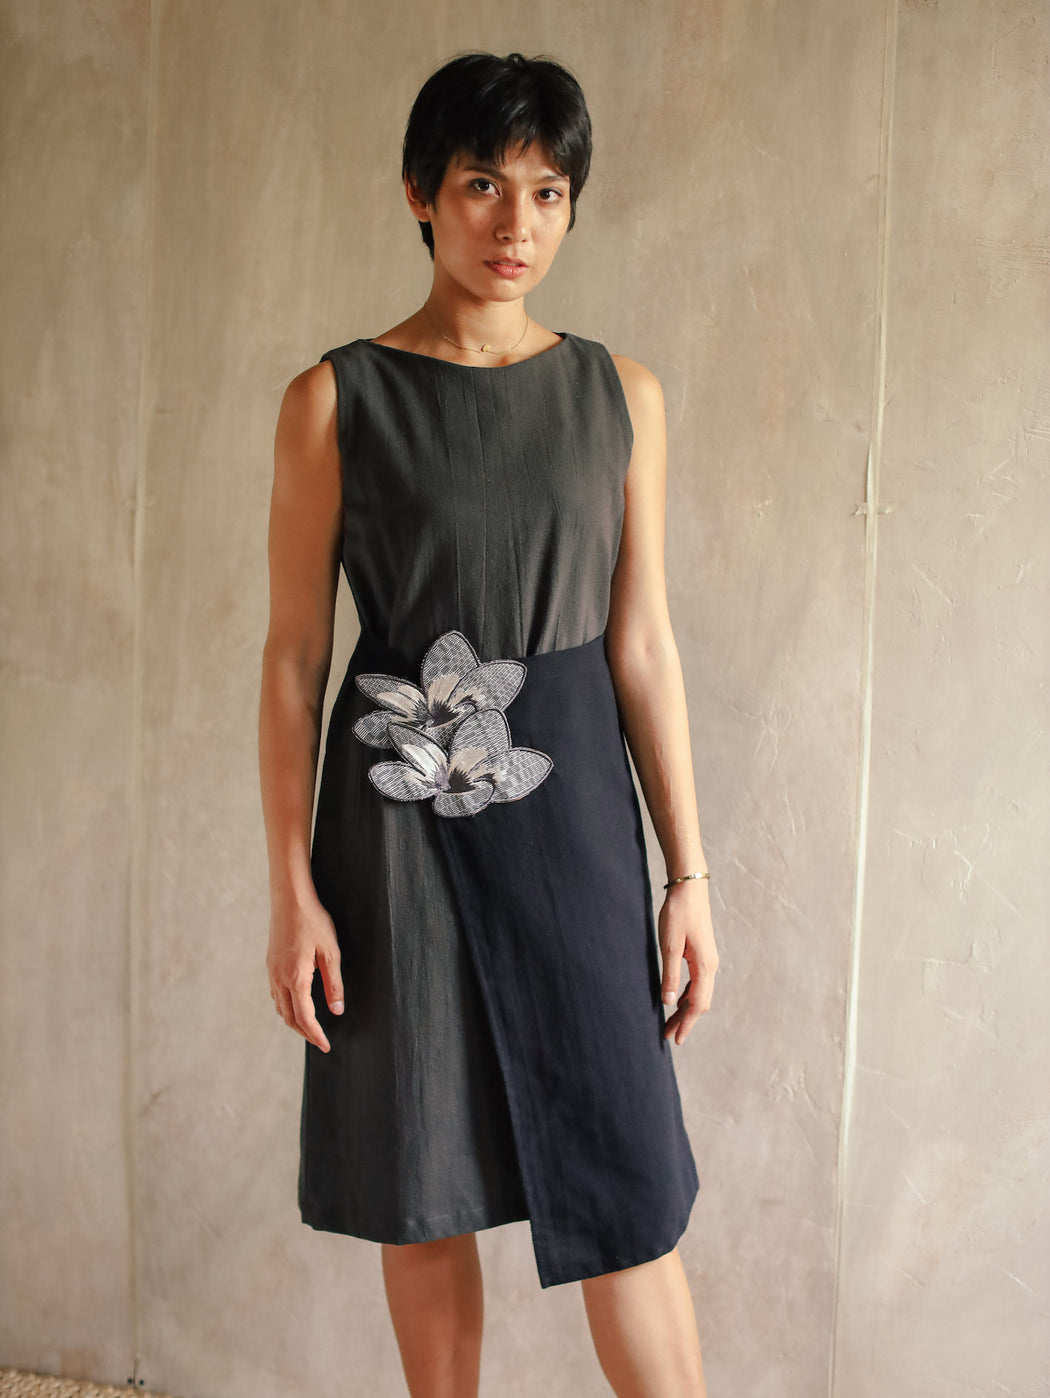 Olivia Embroidered Shift Dress - Dark Grey & Black